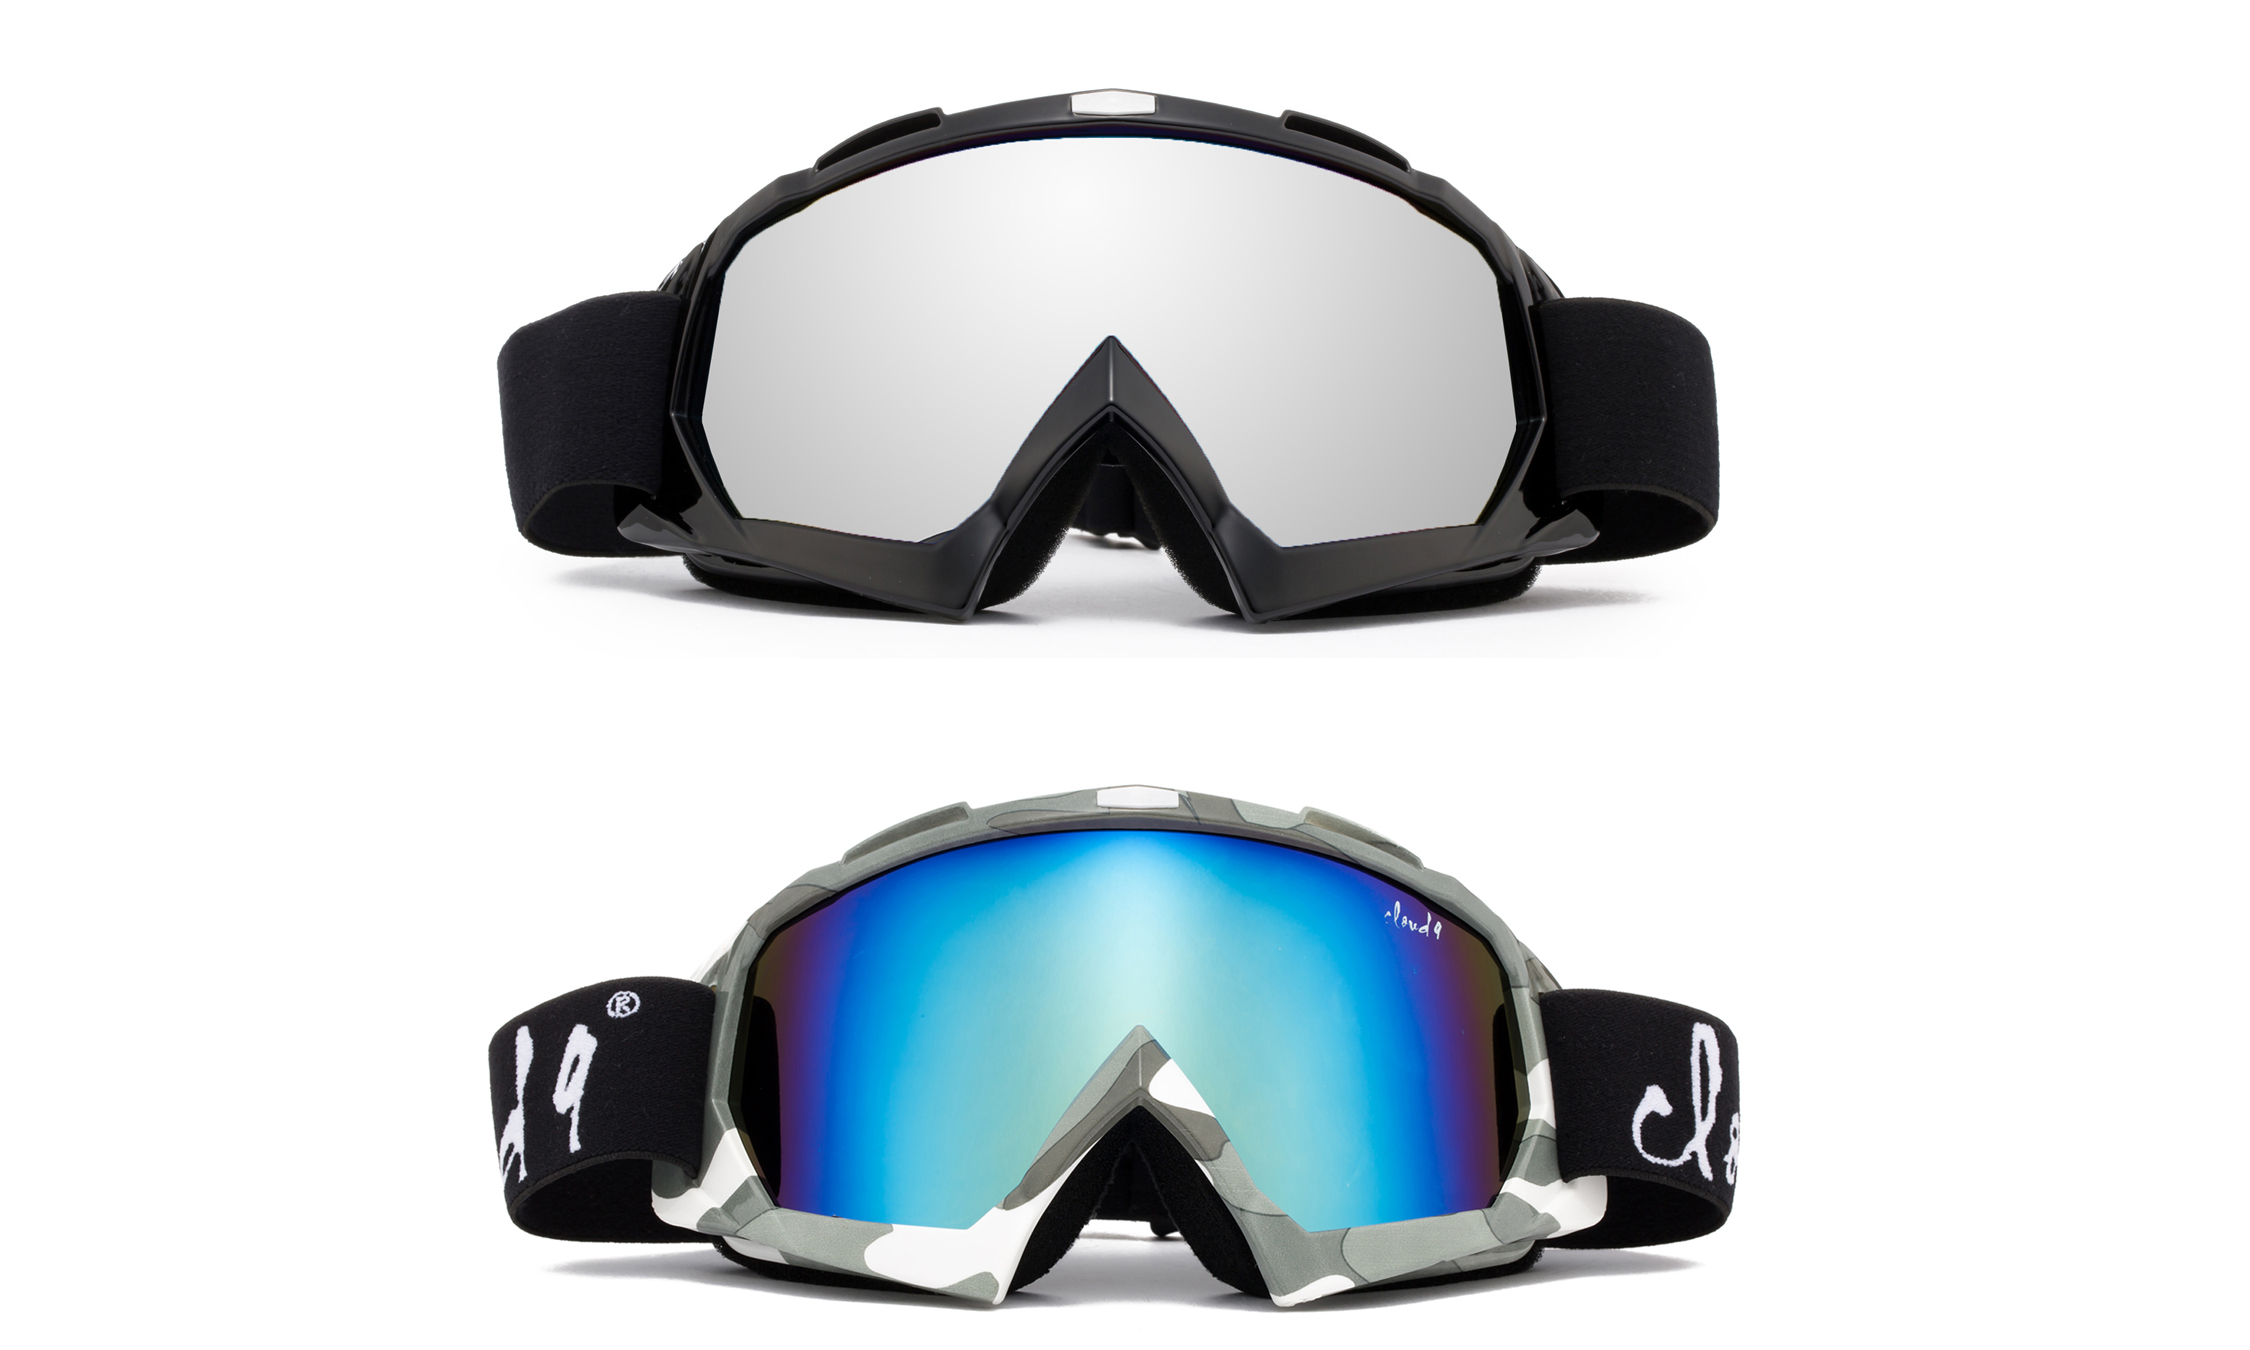 "Cloud 9 Snow Goggles ""Gorilla"" Adult Camo Anti-Fog Dual Lens UV400 Snowboarding Ski (1 Pair only, choose your... by"